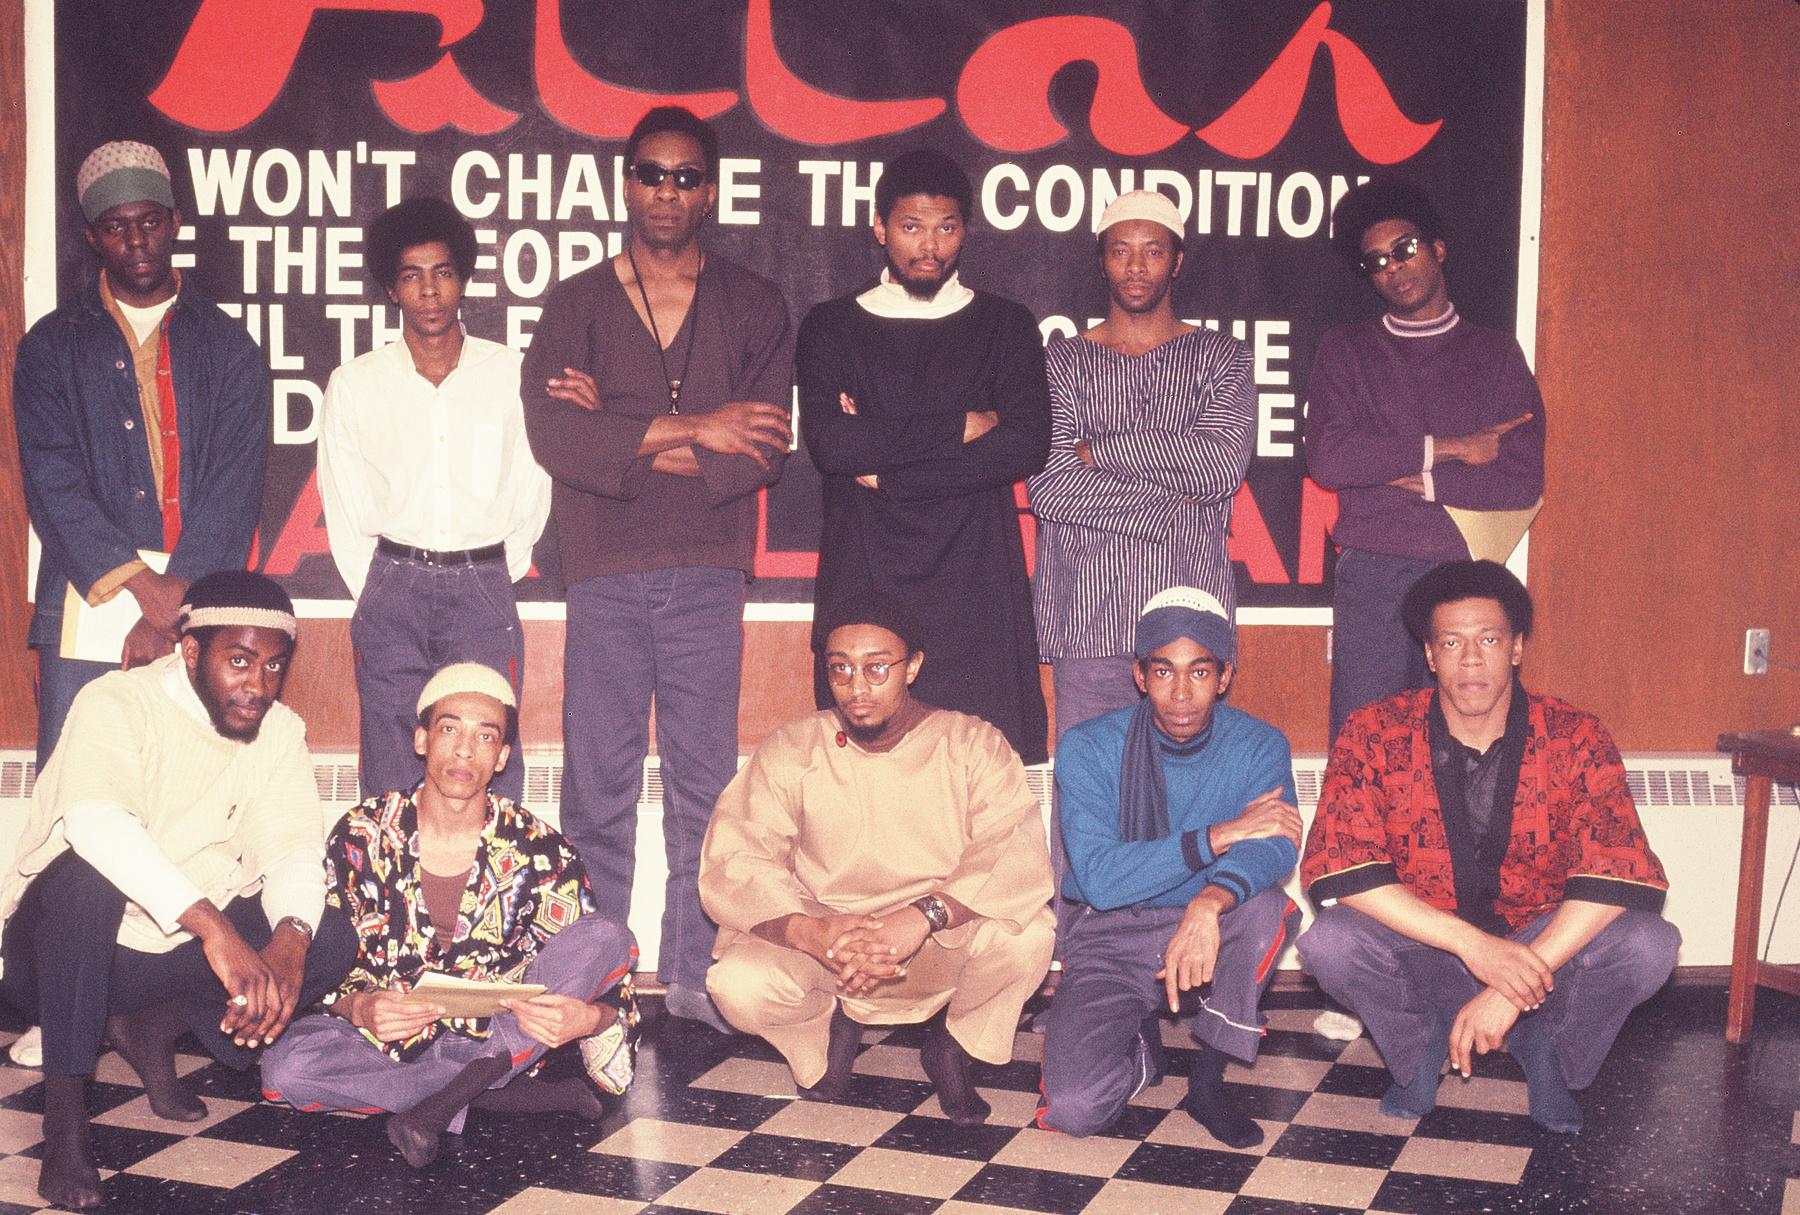 """Which brings me to July 2018 and publication of  Ballots and Bullets, Black Power Politics and Urban Guerrilla Warfare in 1968 Cleveland . Above a photo of Fred """"Ahmed"""" Evans on death row (tall, middle of photo, sunglasses). The Imam who performed Islamic services for prisoners, Mutawaf Shaheed, in white turtleneck next to Evans, became one of my main sources for information on the black nationalist movement in Cleveland in 1968."""